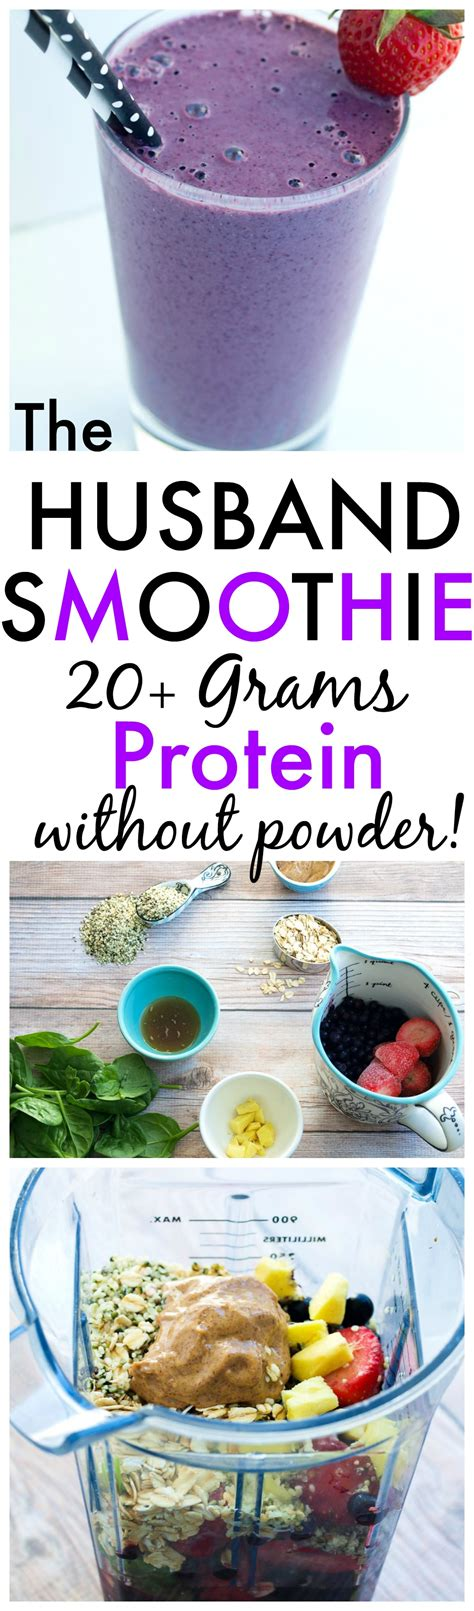 protein 20 grams the husband protein smoothie happy healthy